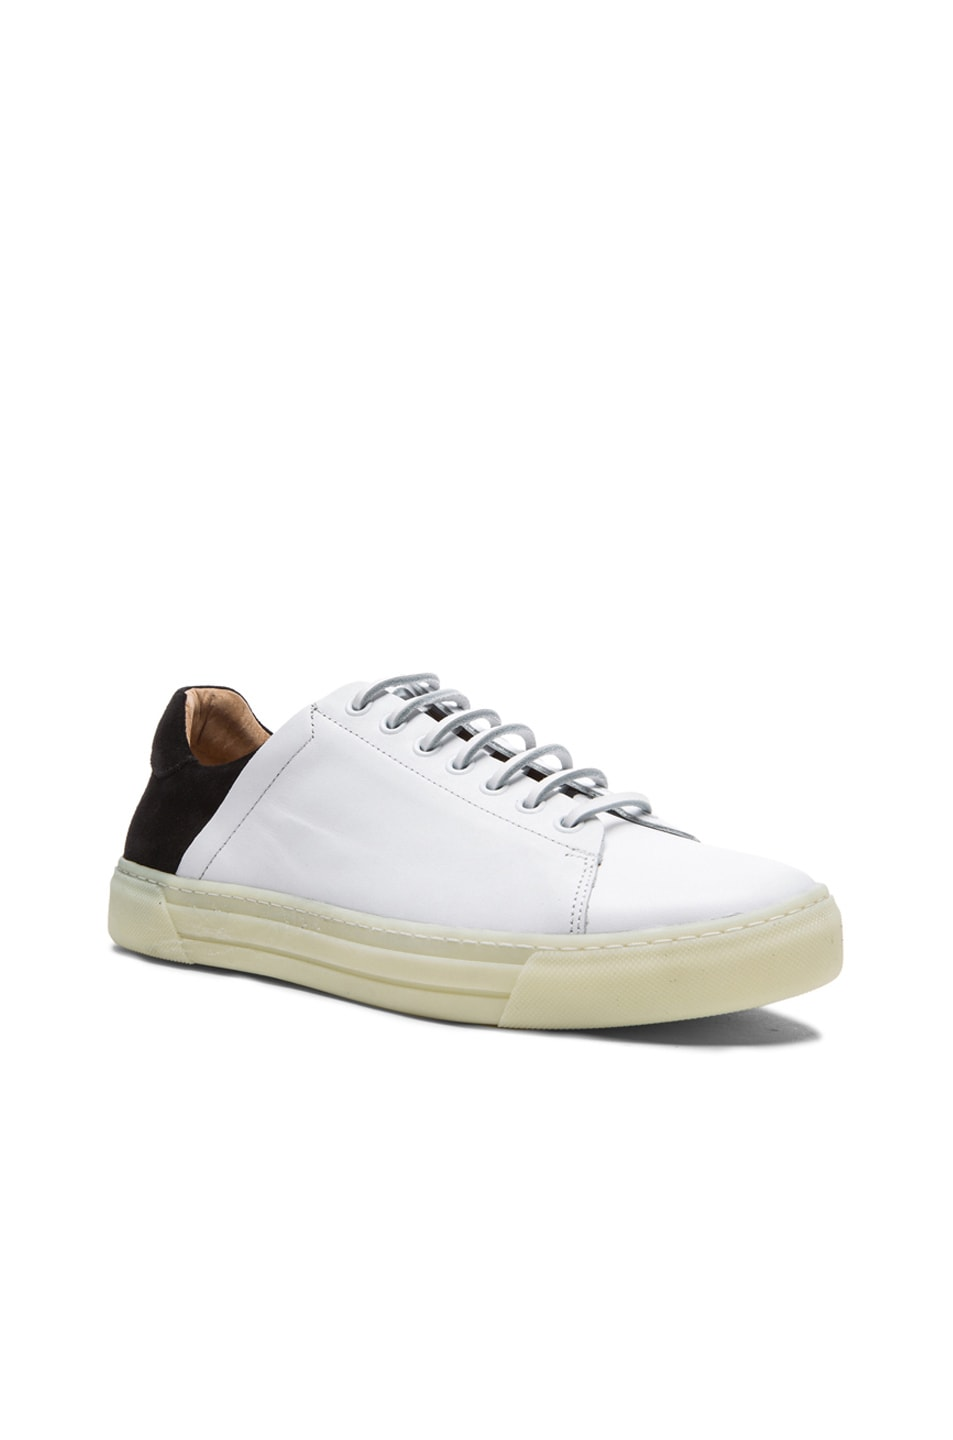 FOOTWEAR - Low-tops & sneakers Damir Doma pFdeflc